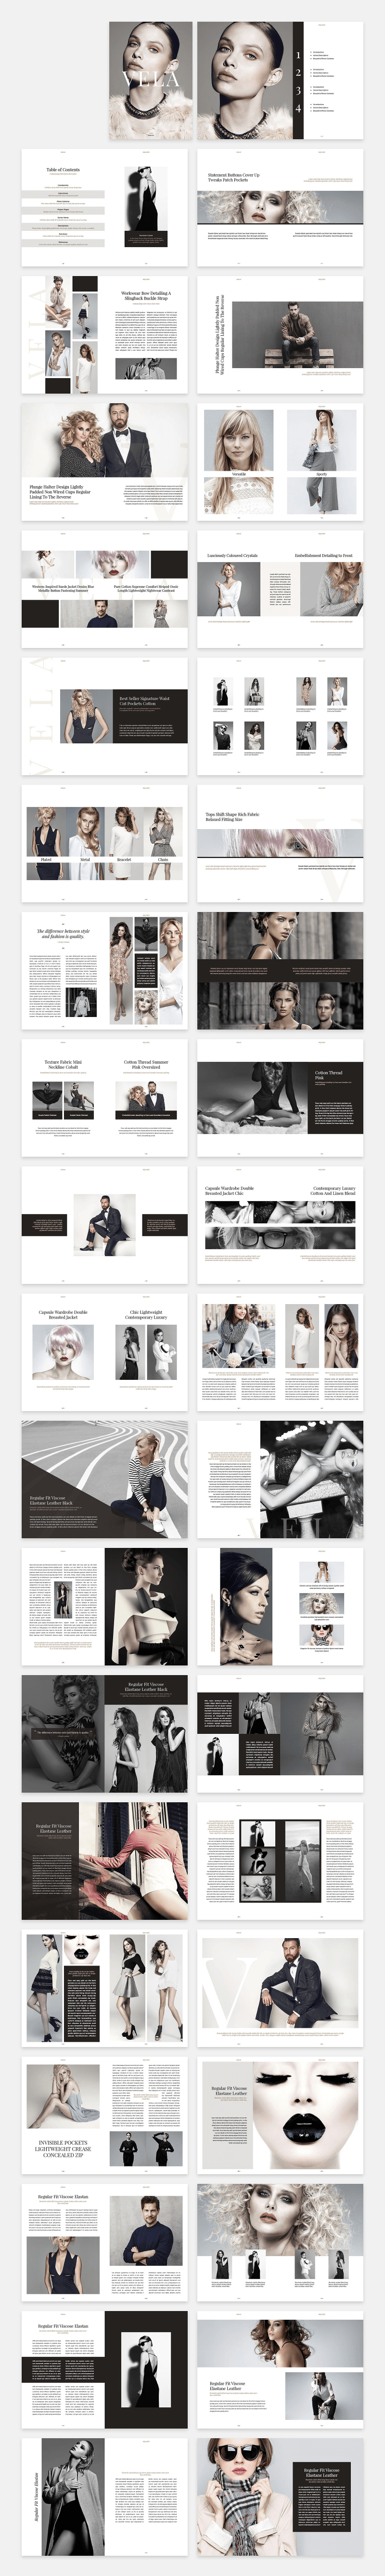 indesign-professional-print-templates-59